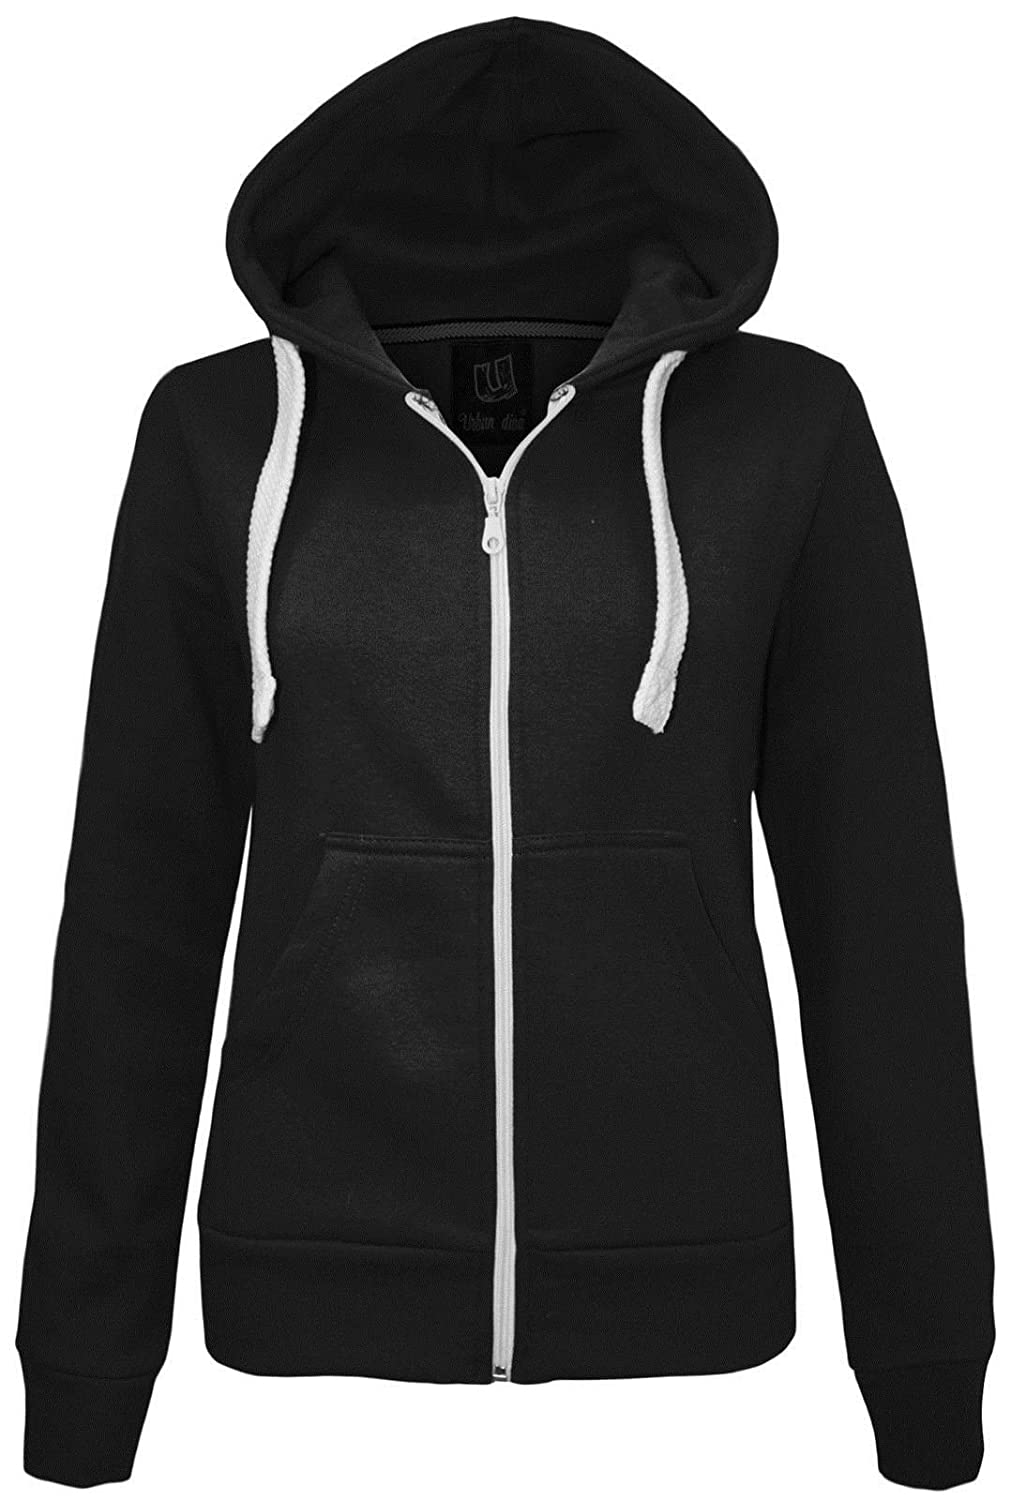 Black Jacket White Zipper